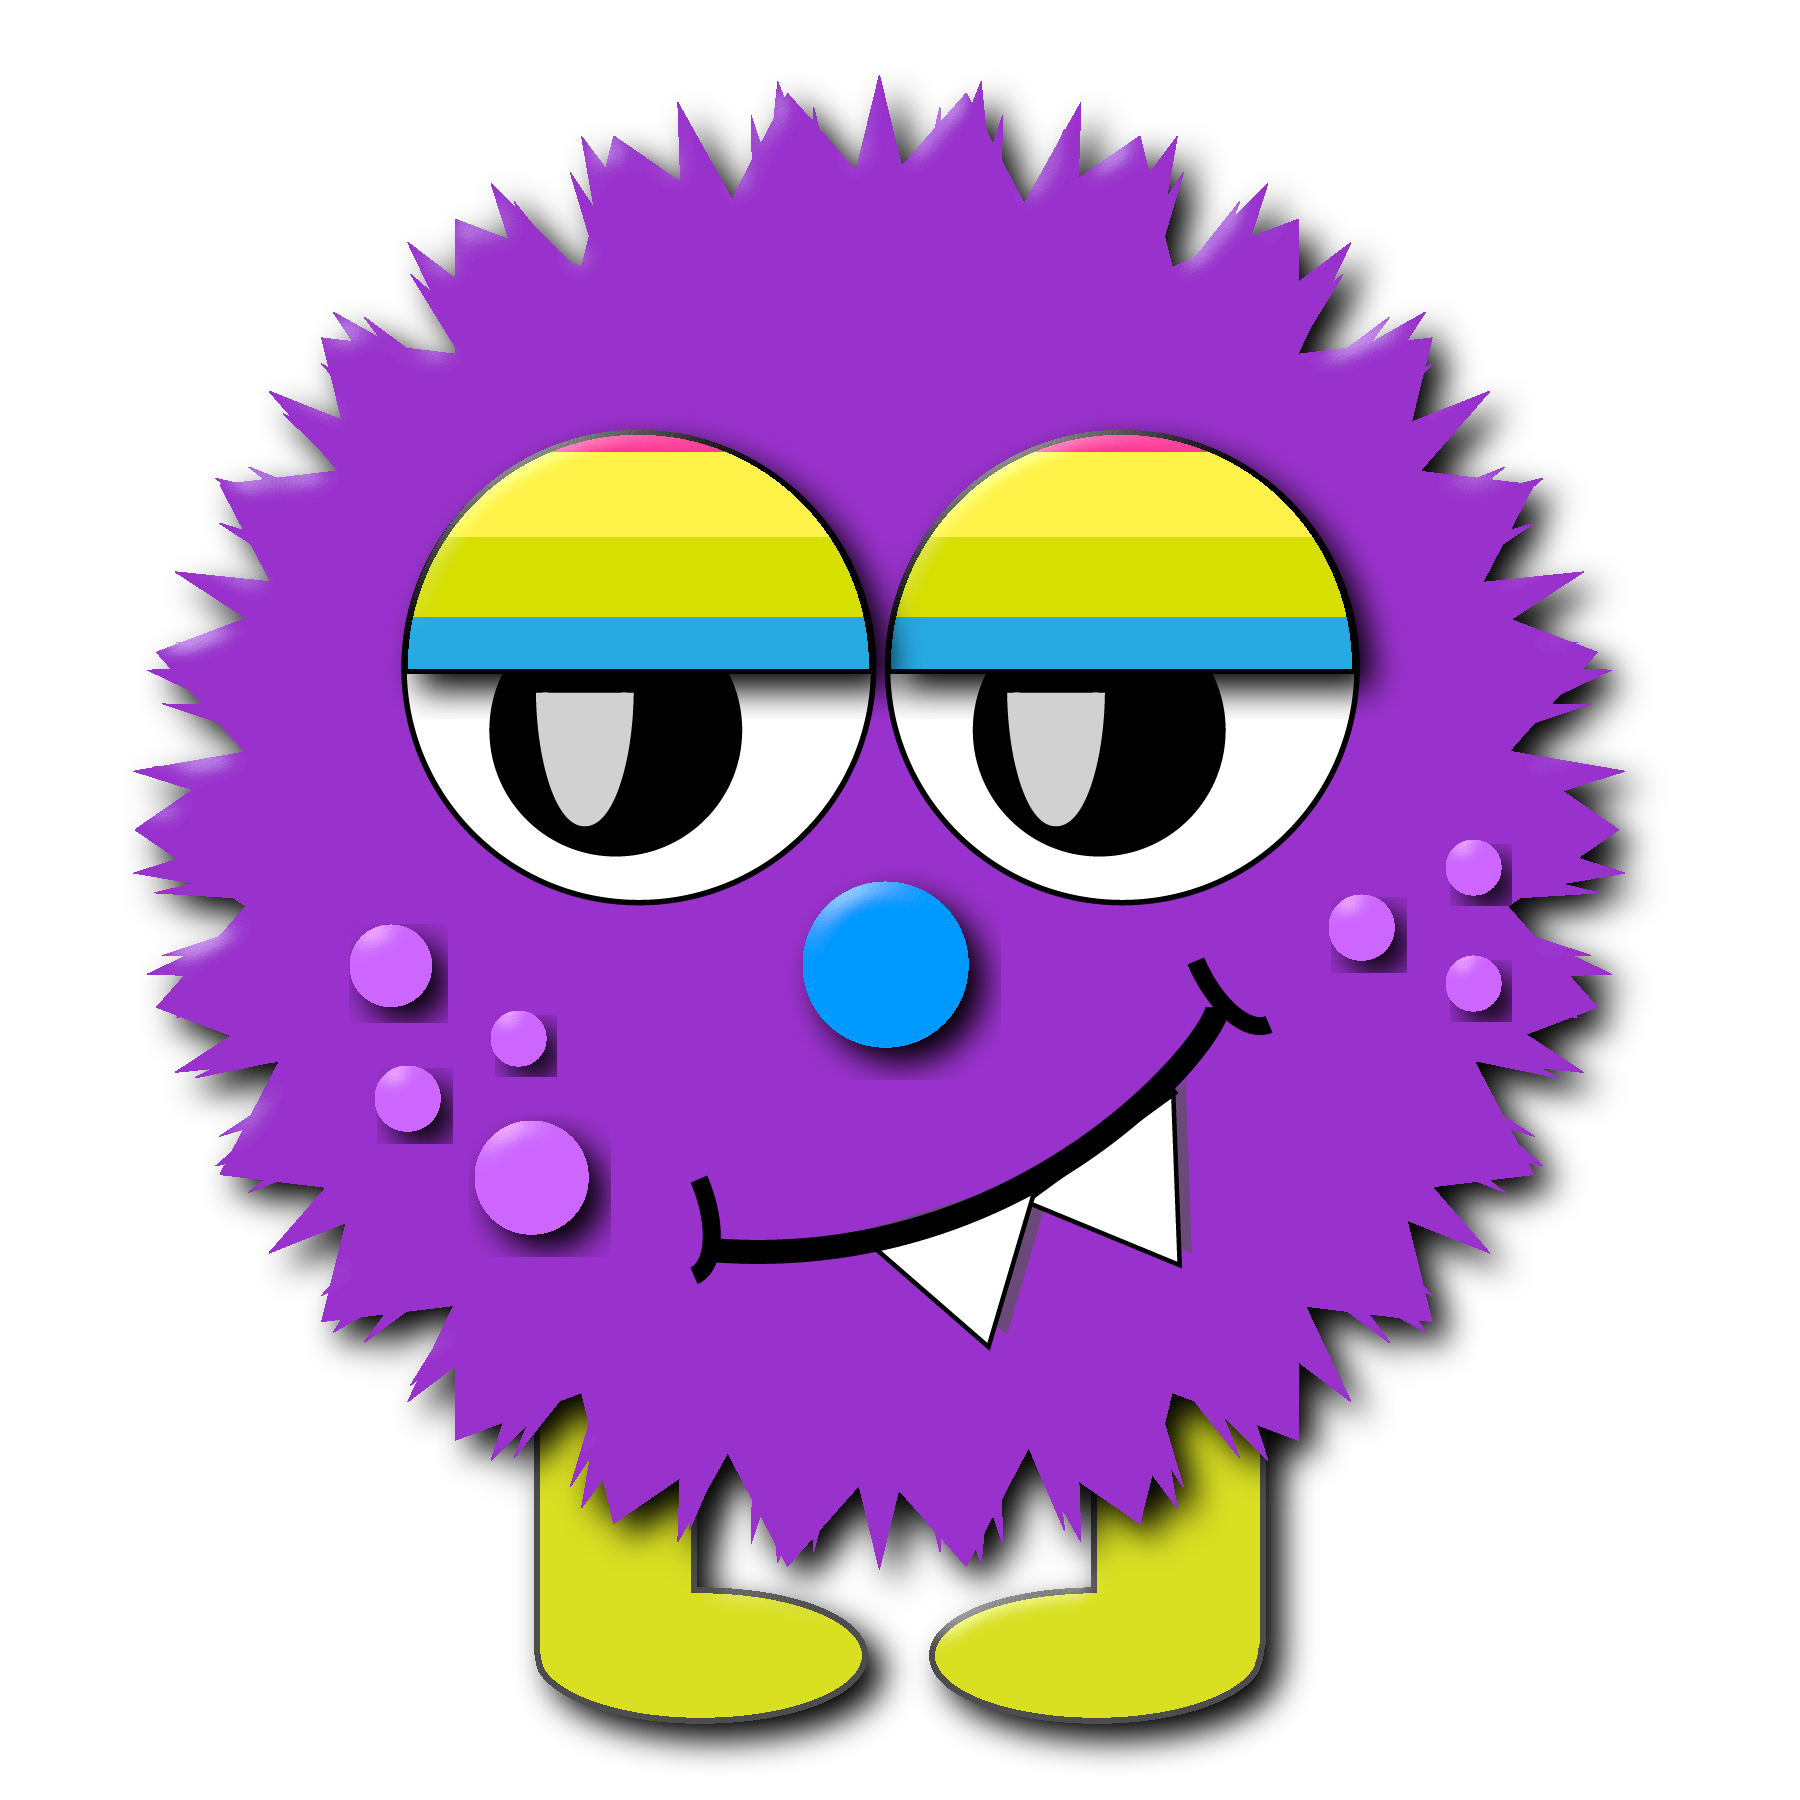 School monster clipart library Monster Clip Art | Clipart Panda - Free Clipart Images | Monstritos ... library